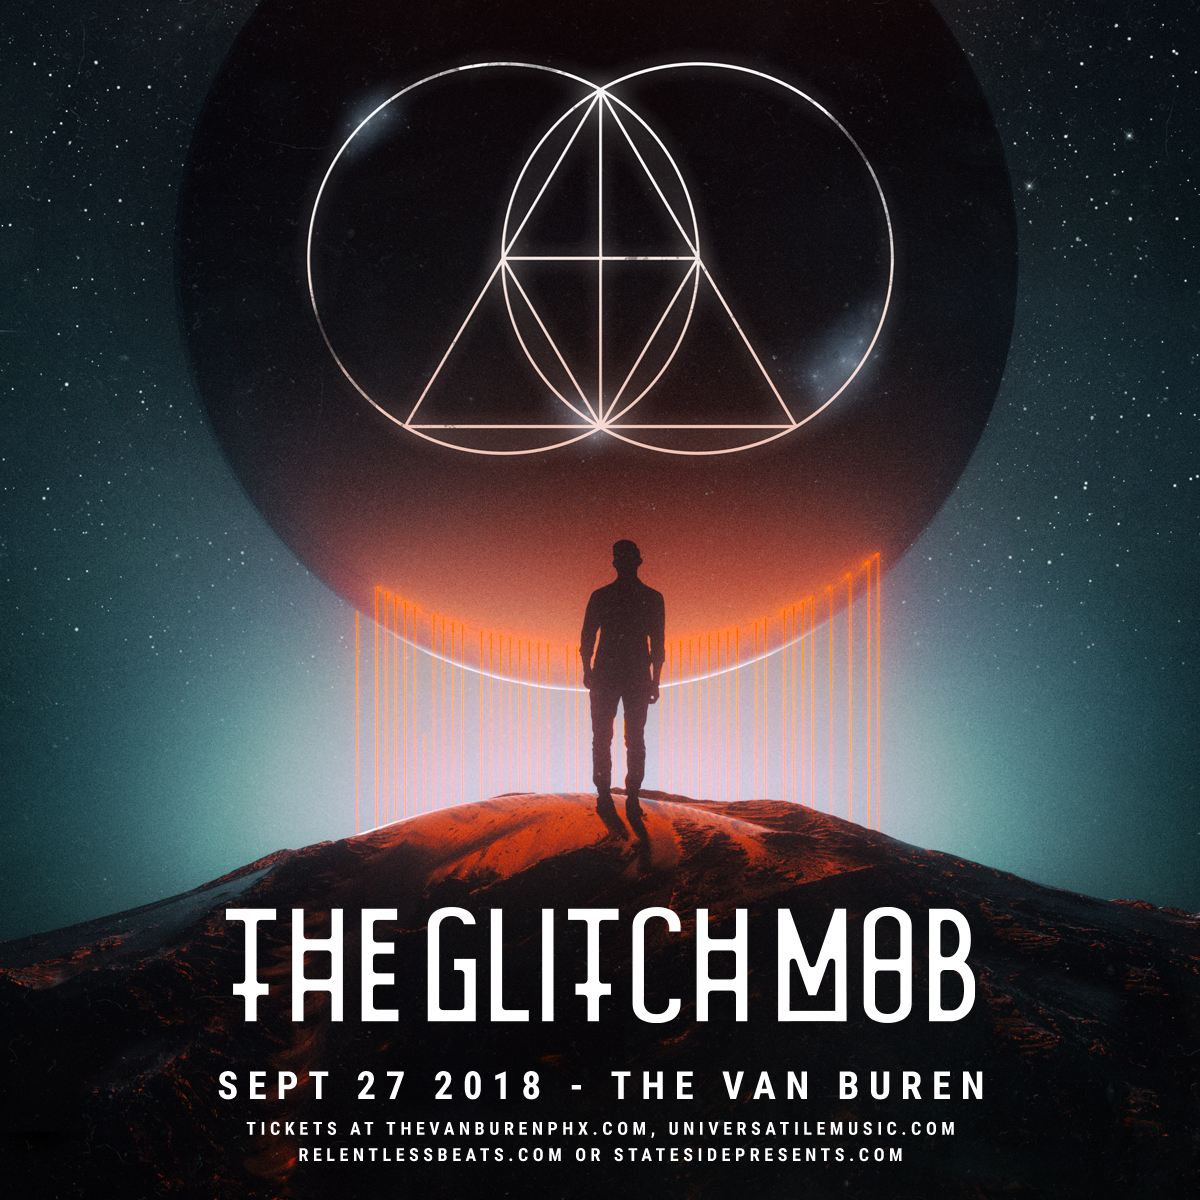 Flyer for The Glitch Mob